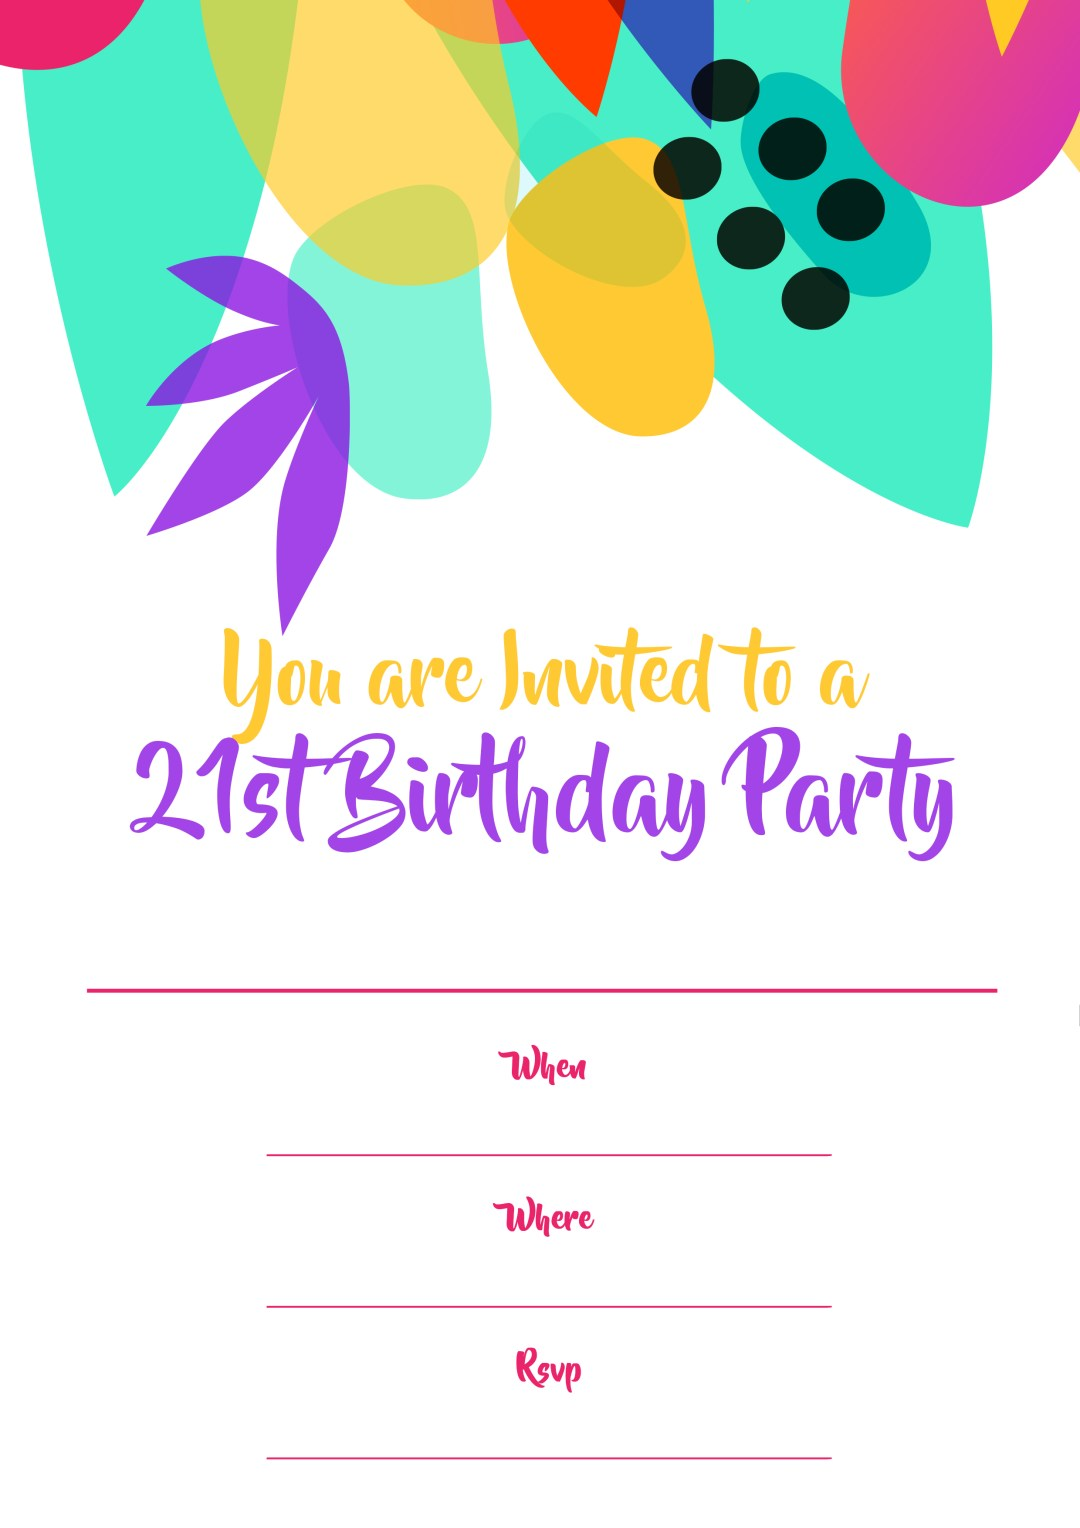 21st birthday party invitation with bright colours